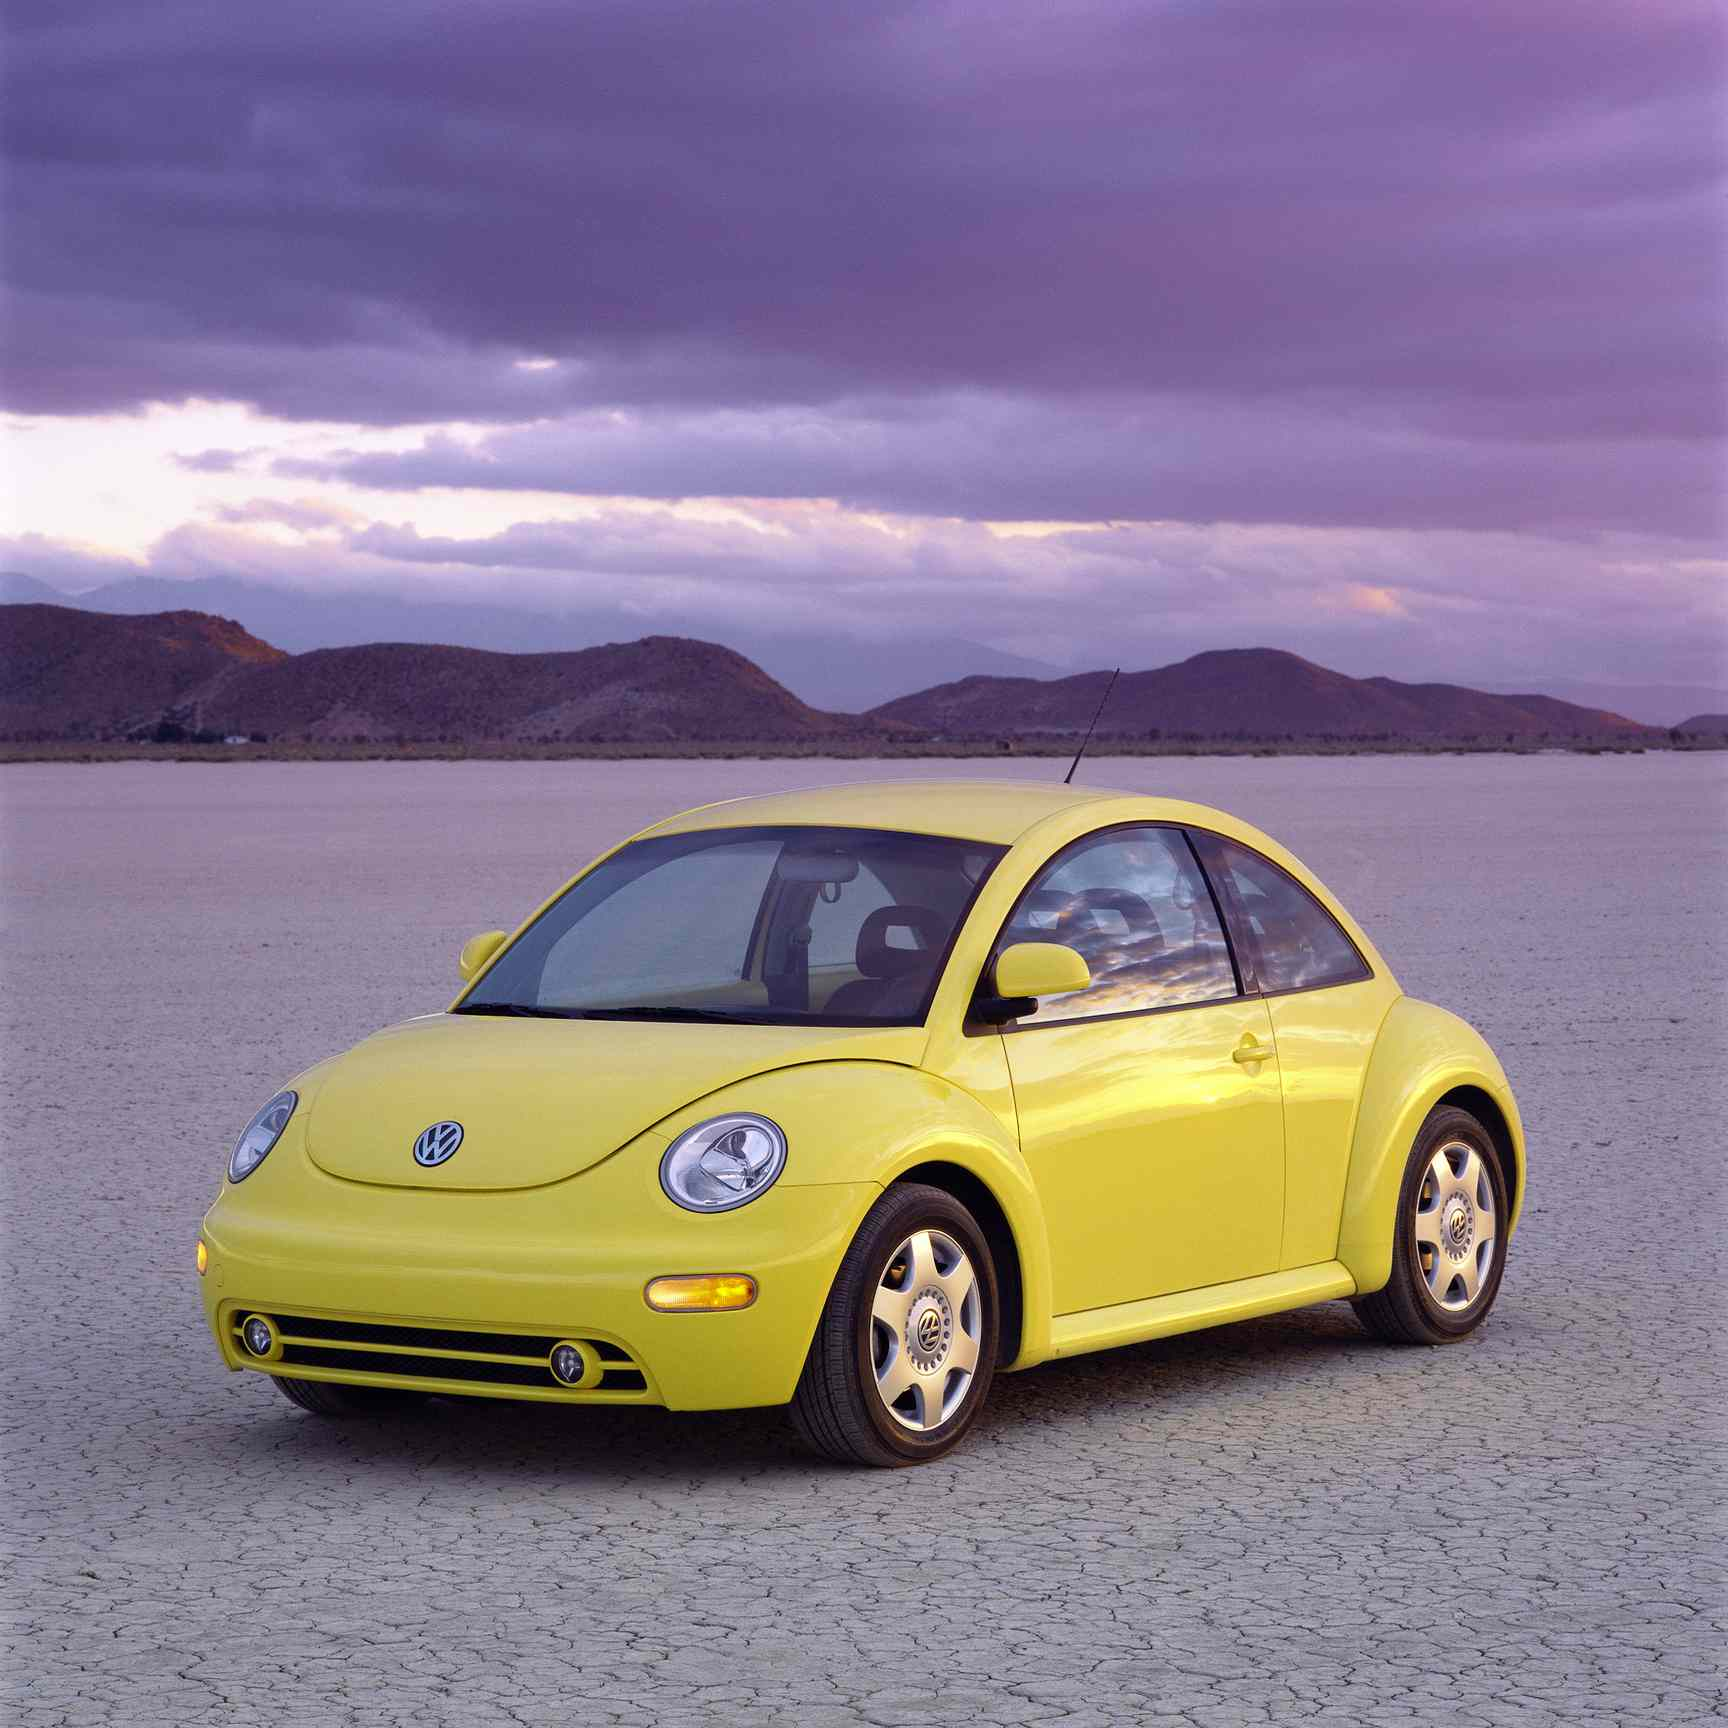 Image result for best car photos in the world